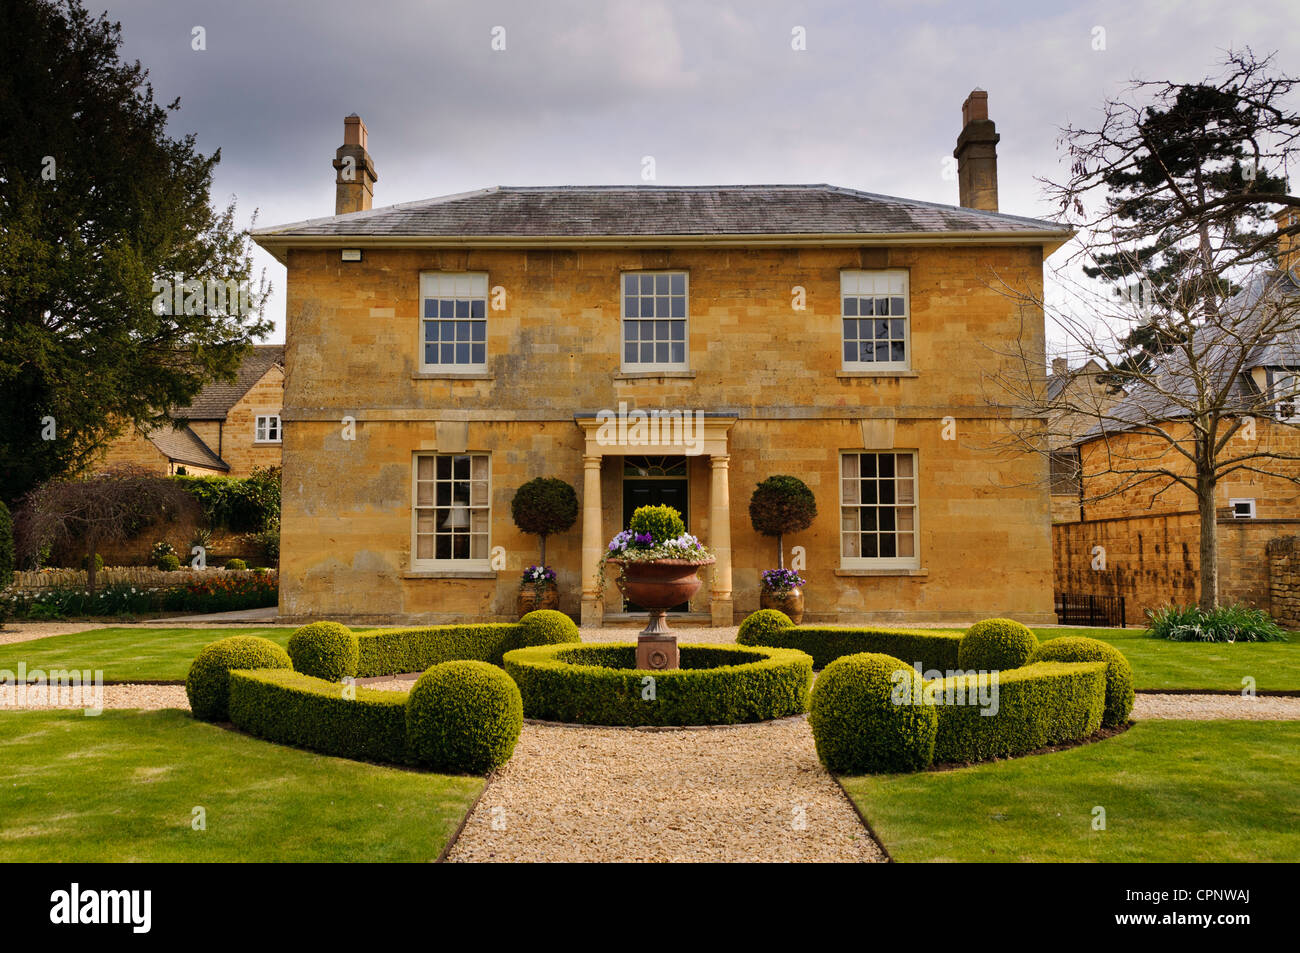 Perfectly symmetrical honey coloured Cotswold stone house and its front garden Broadway Worcestershire & Symmetrical House Stock Photos \u0026 Symmetrical House Stock Images - Alamy